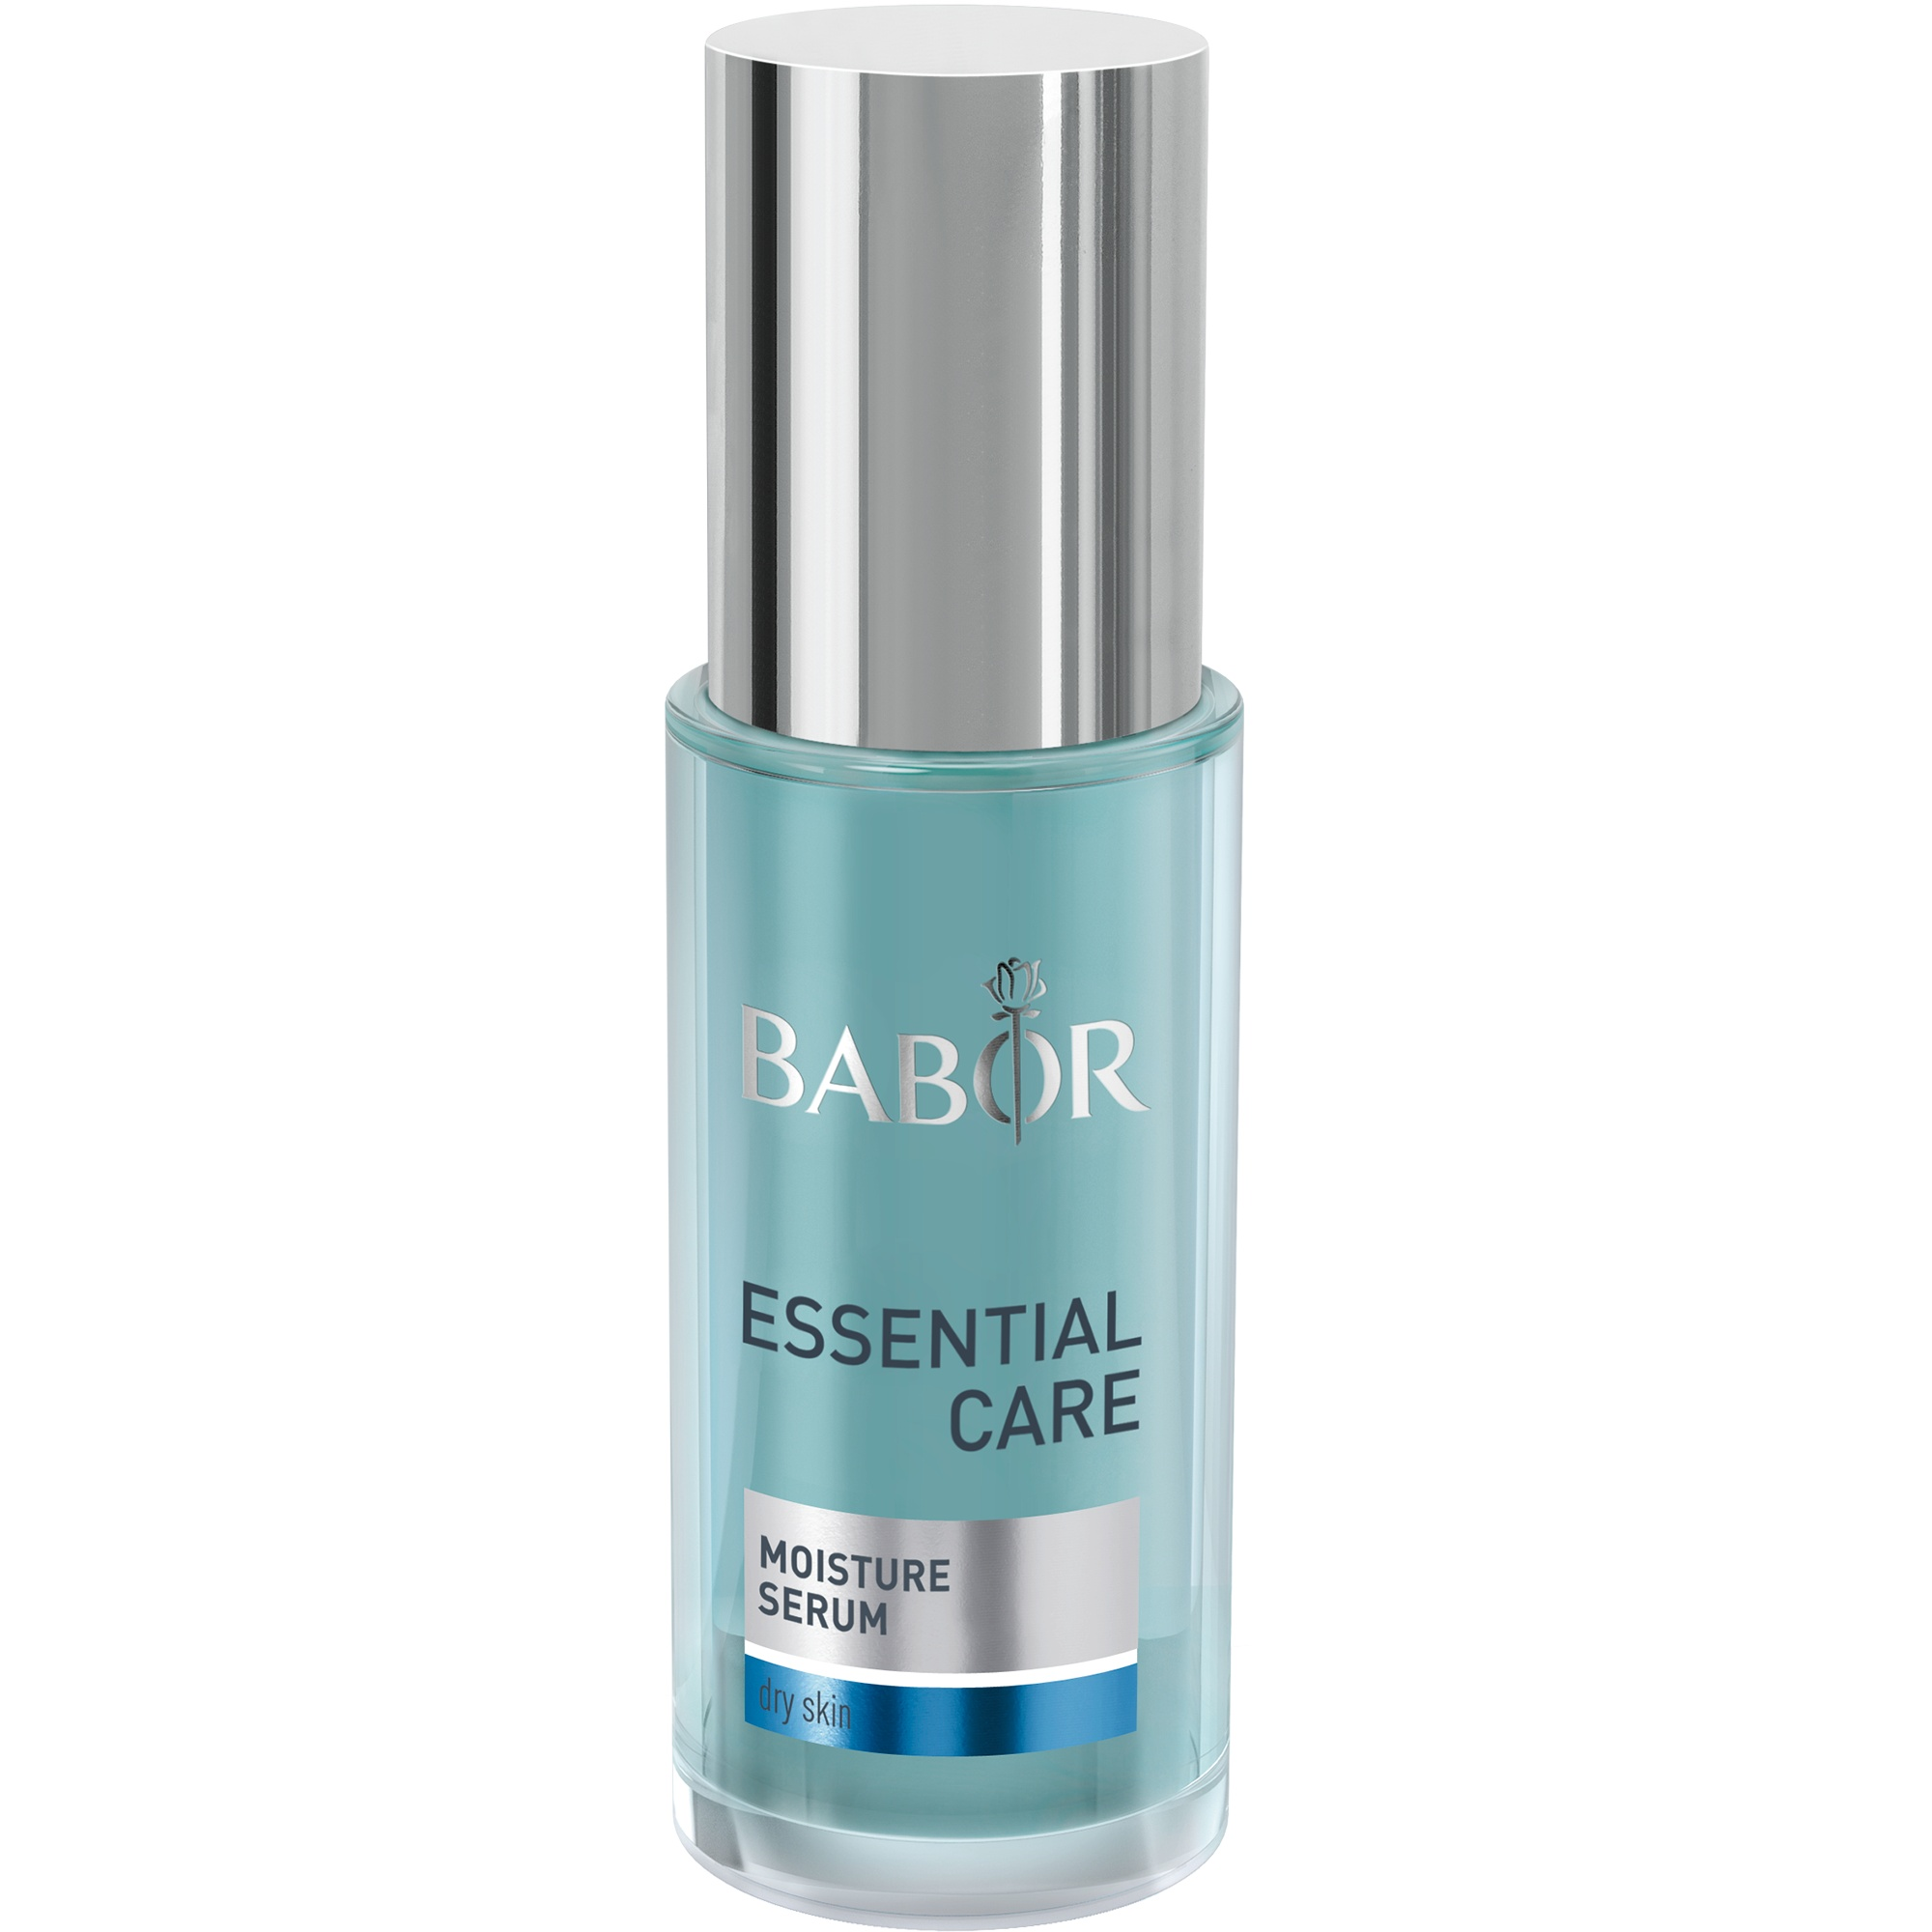 Essential Care Moisture Serum 50 ml